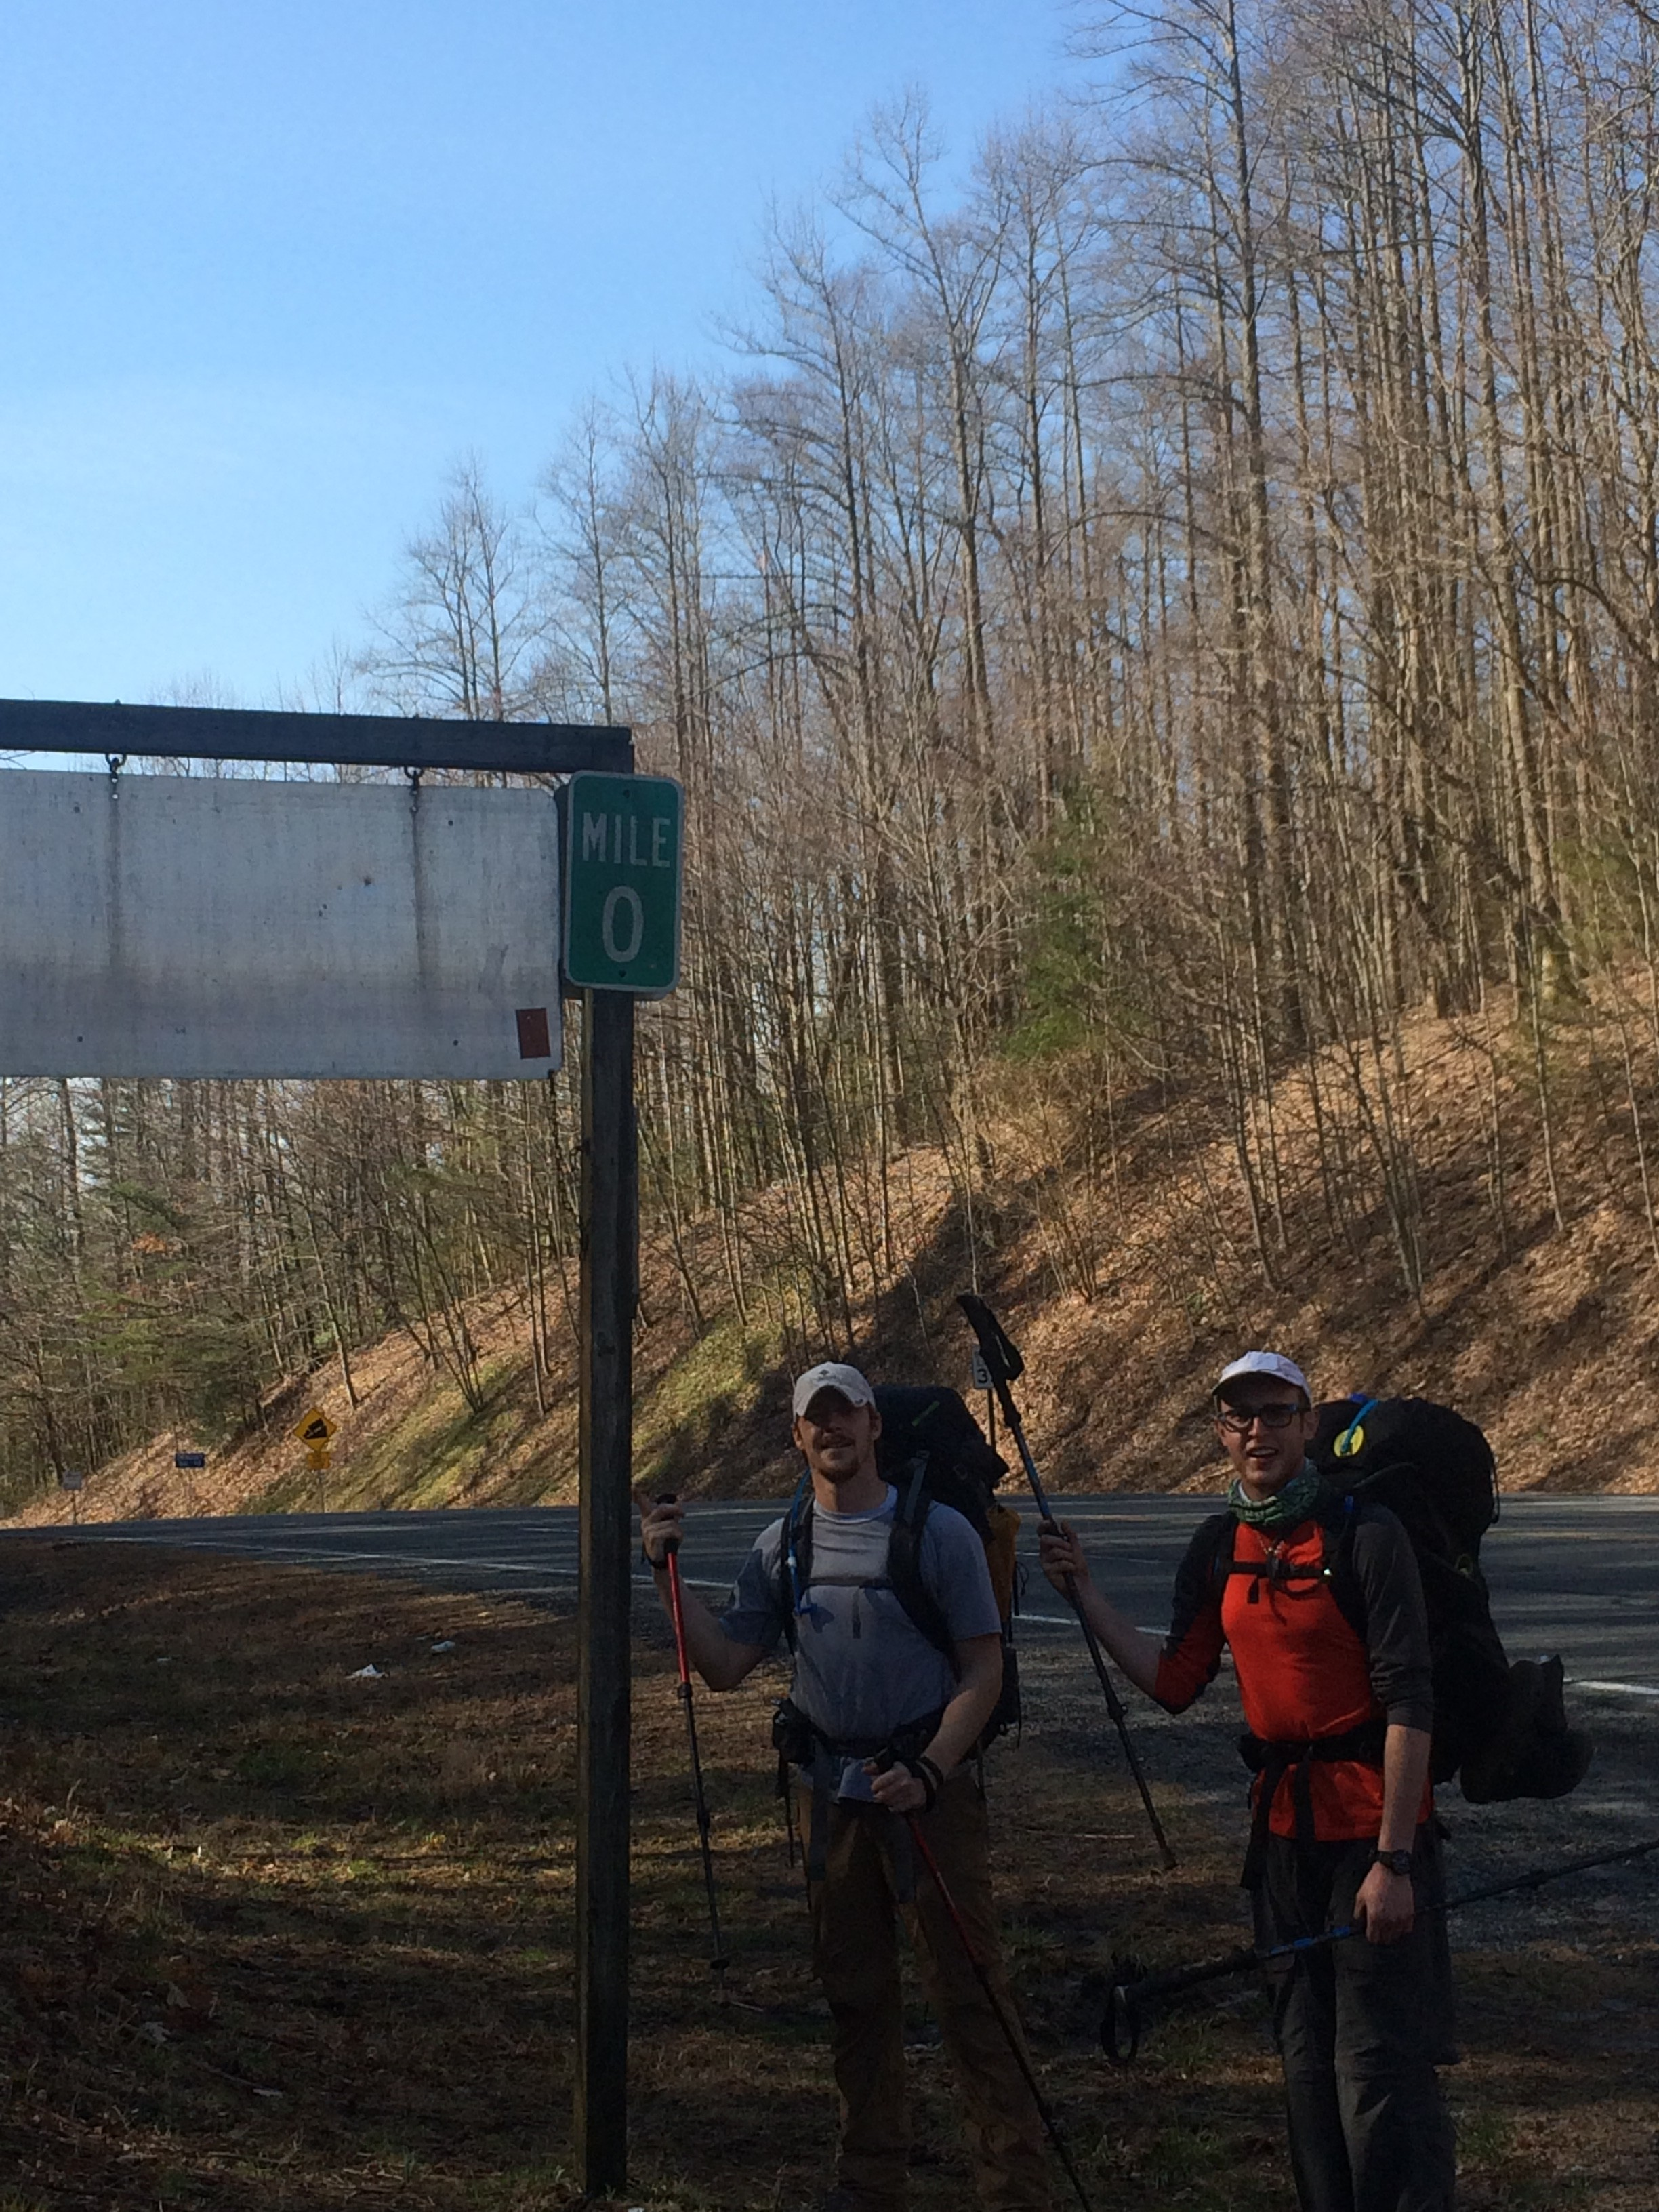 Jared and I (yes another Jared) found this sign for mile 0 to be quite confusing!